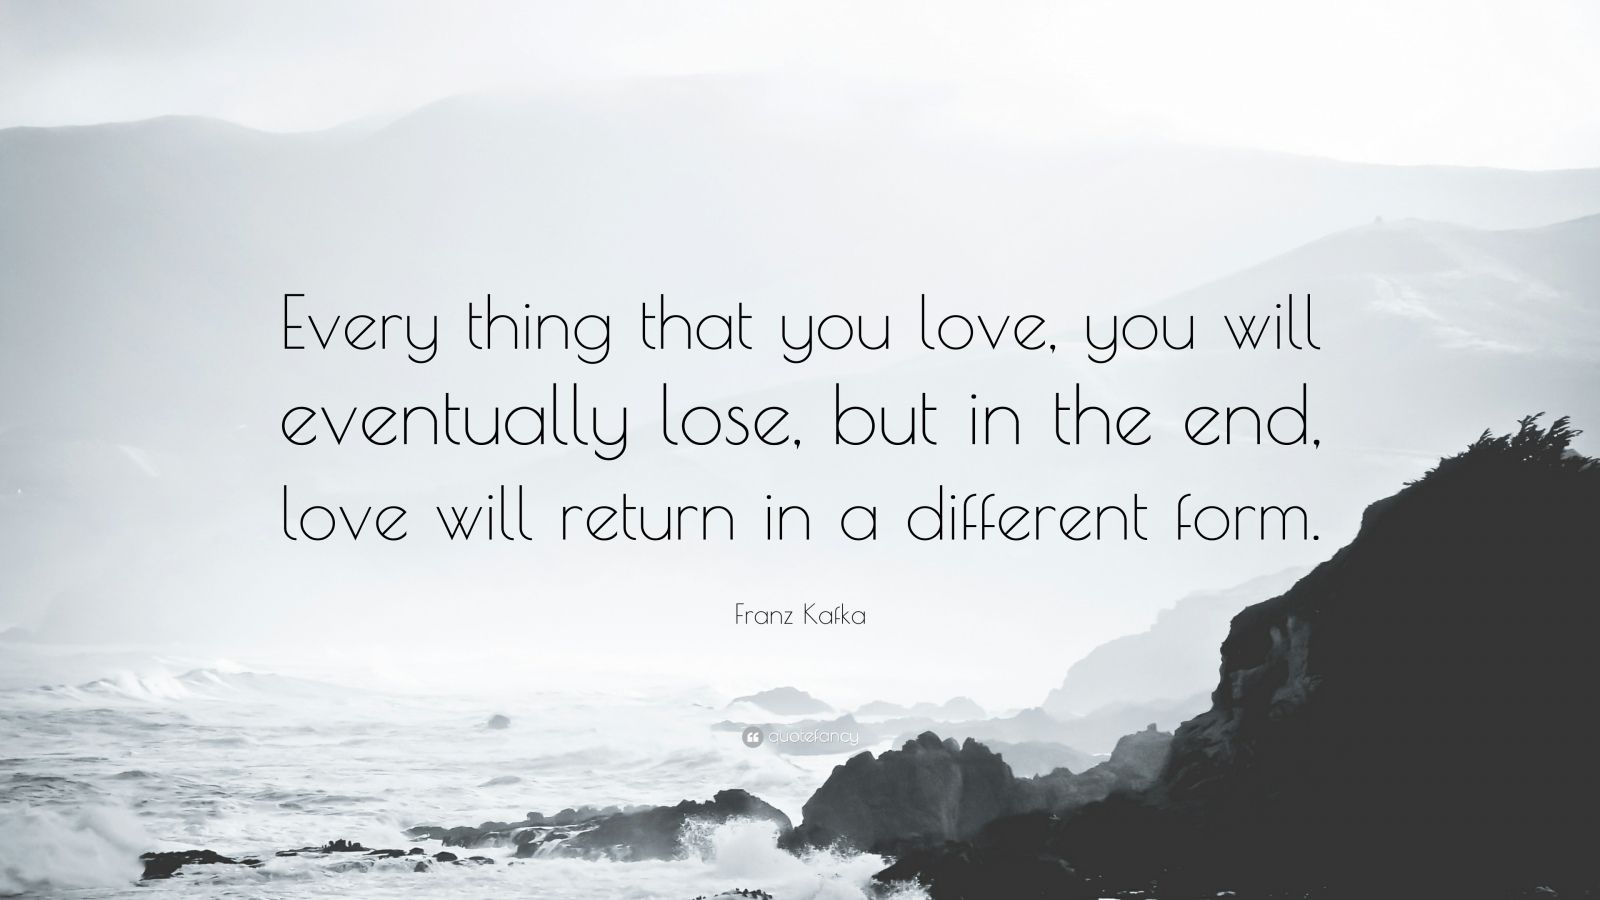 """Franz Kafka Quote: """"Every thing that you love, you will eventually lose, but in the end, love will return in a different form."""""""